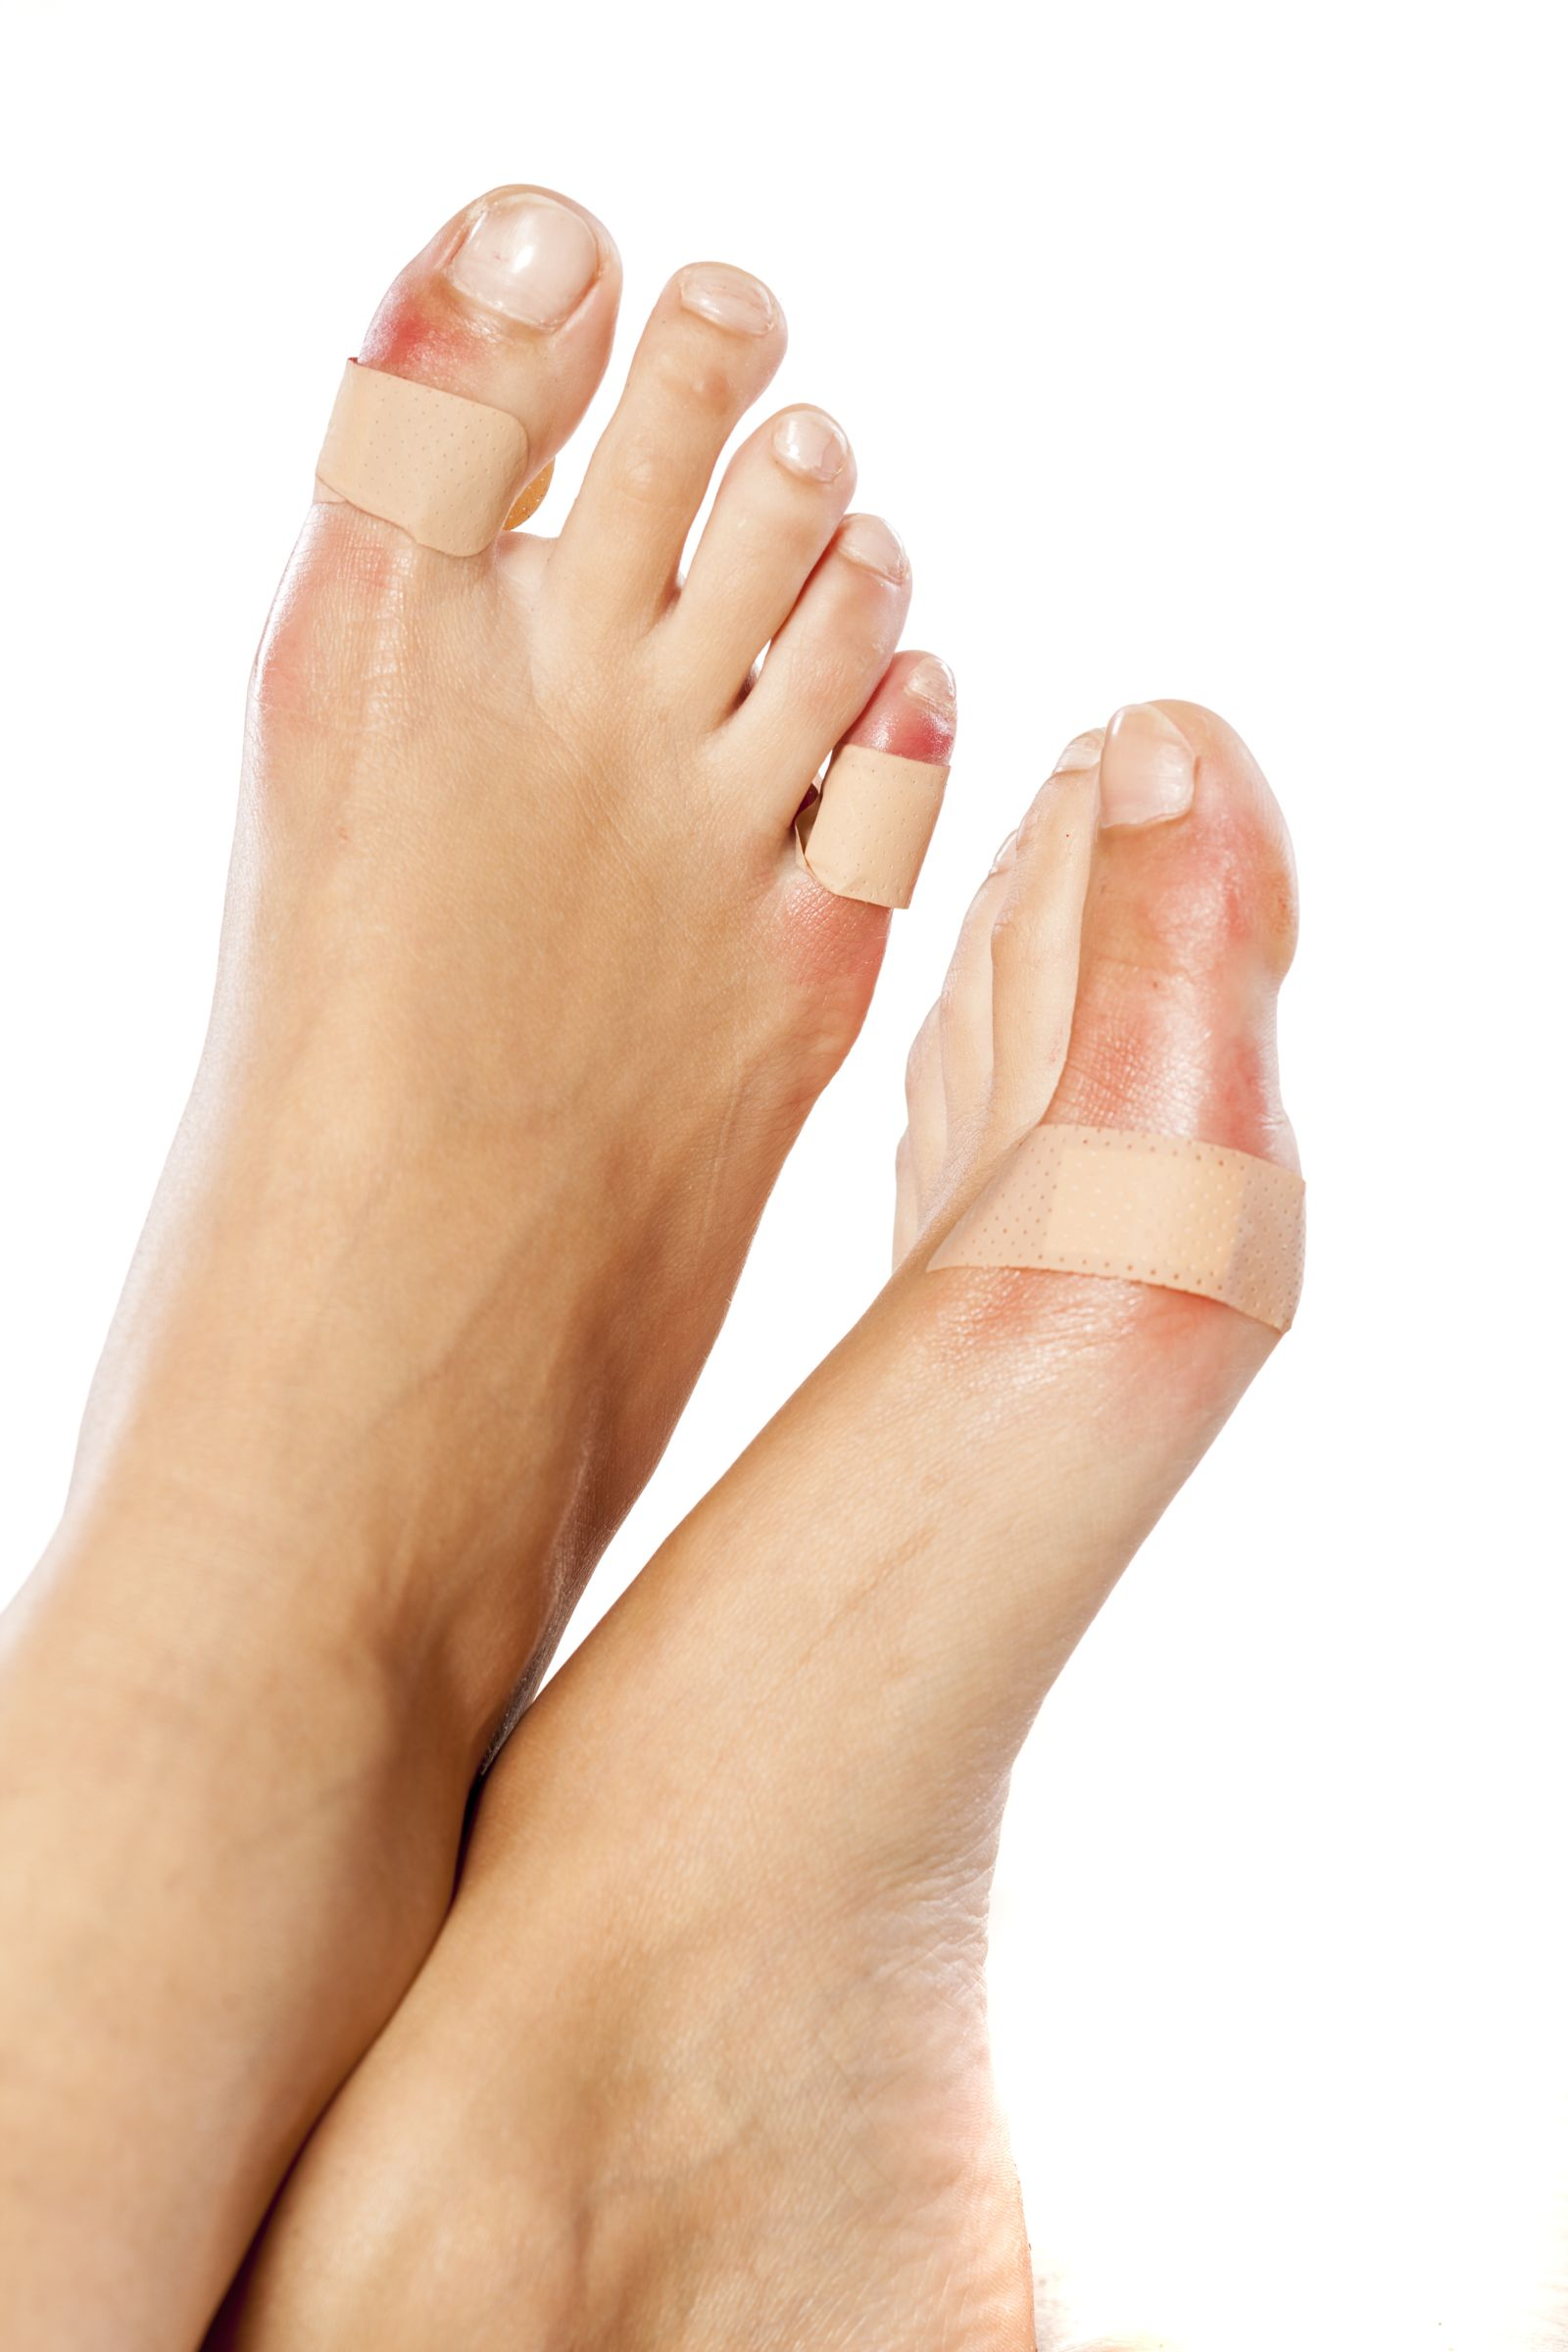 A bandaid might not be enough to heal the impact of a stubbed toe!